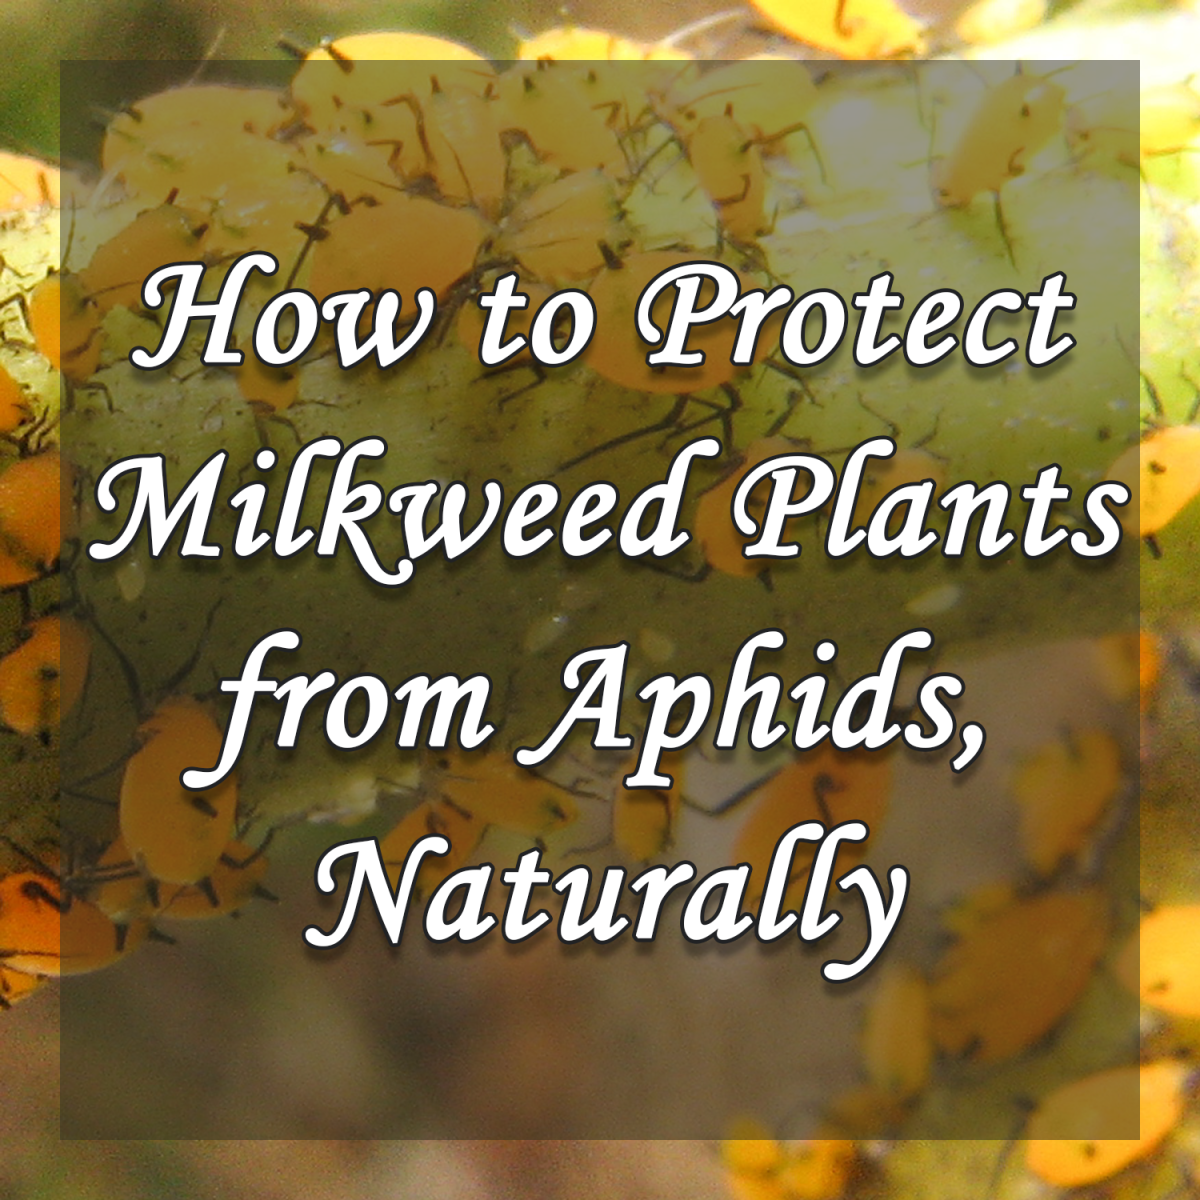 How to Protect Milkweed Plants from Aphids, Naturally